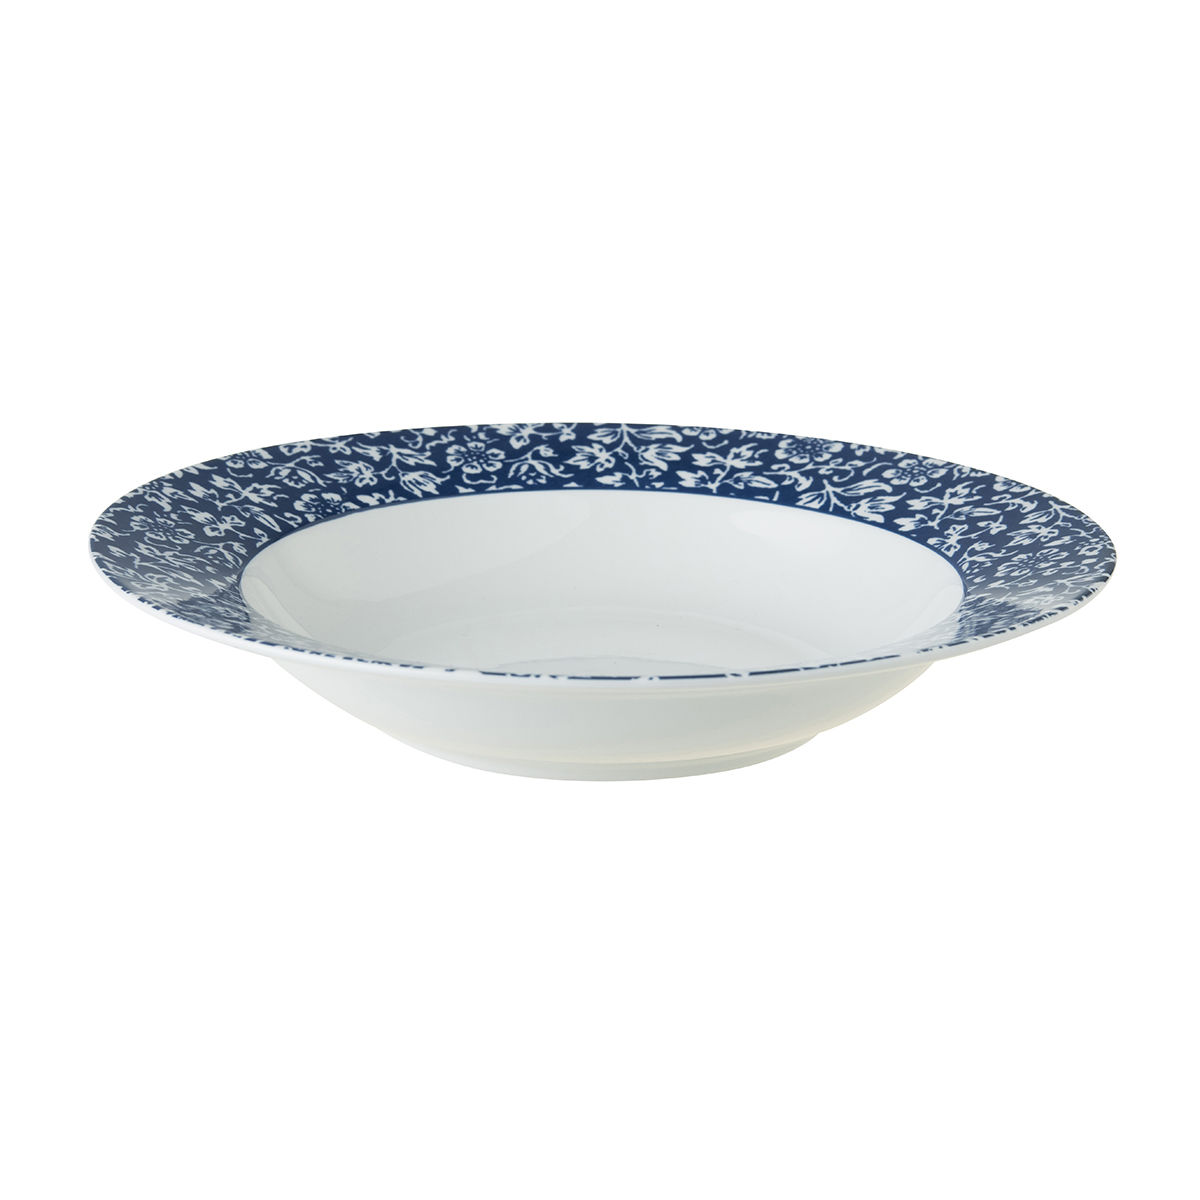 "Laura Ashley 8.4"" Deep Plate Sweet Allysum - product images  of"